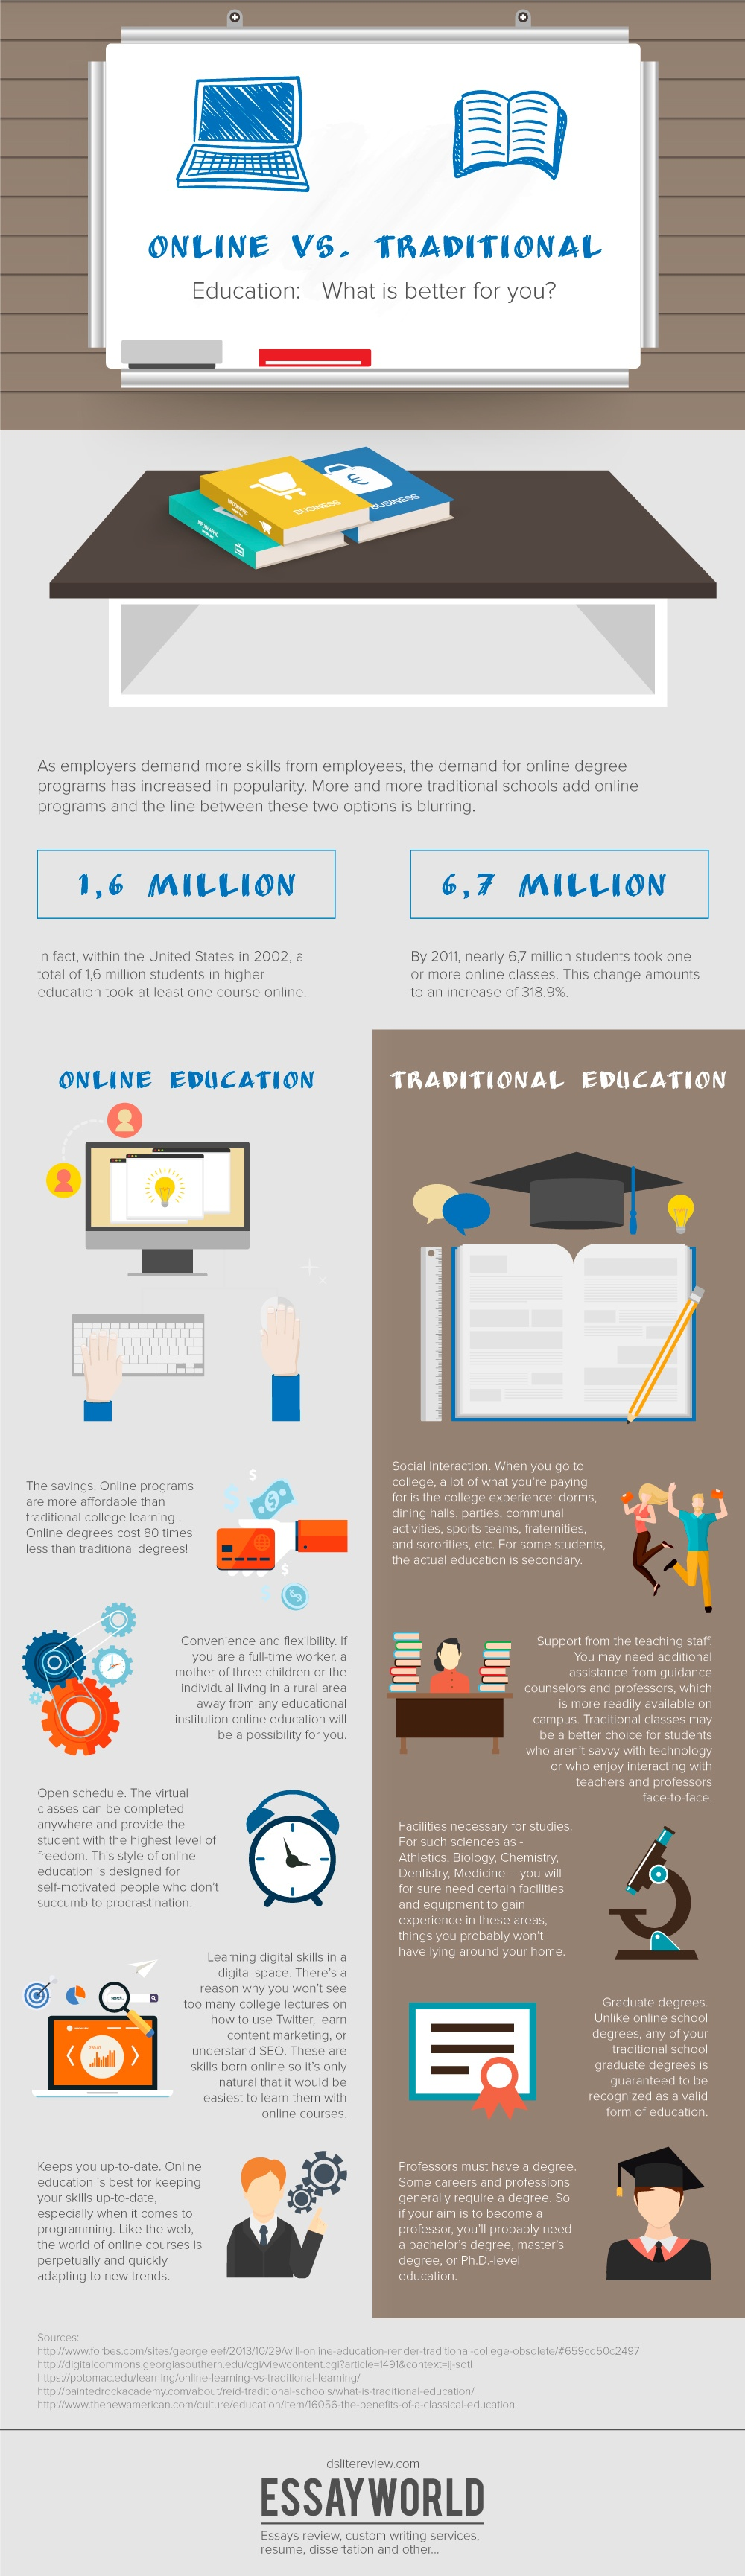 online education vs traditional education essay